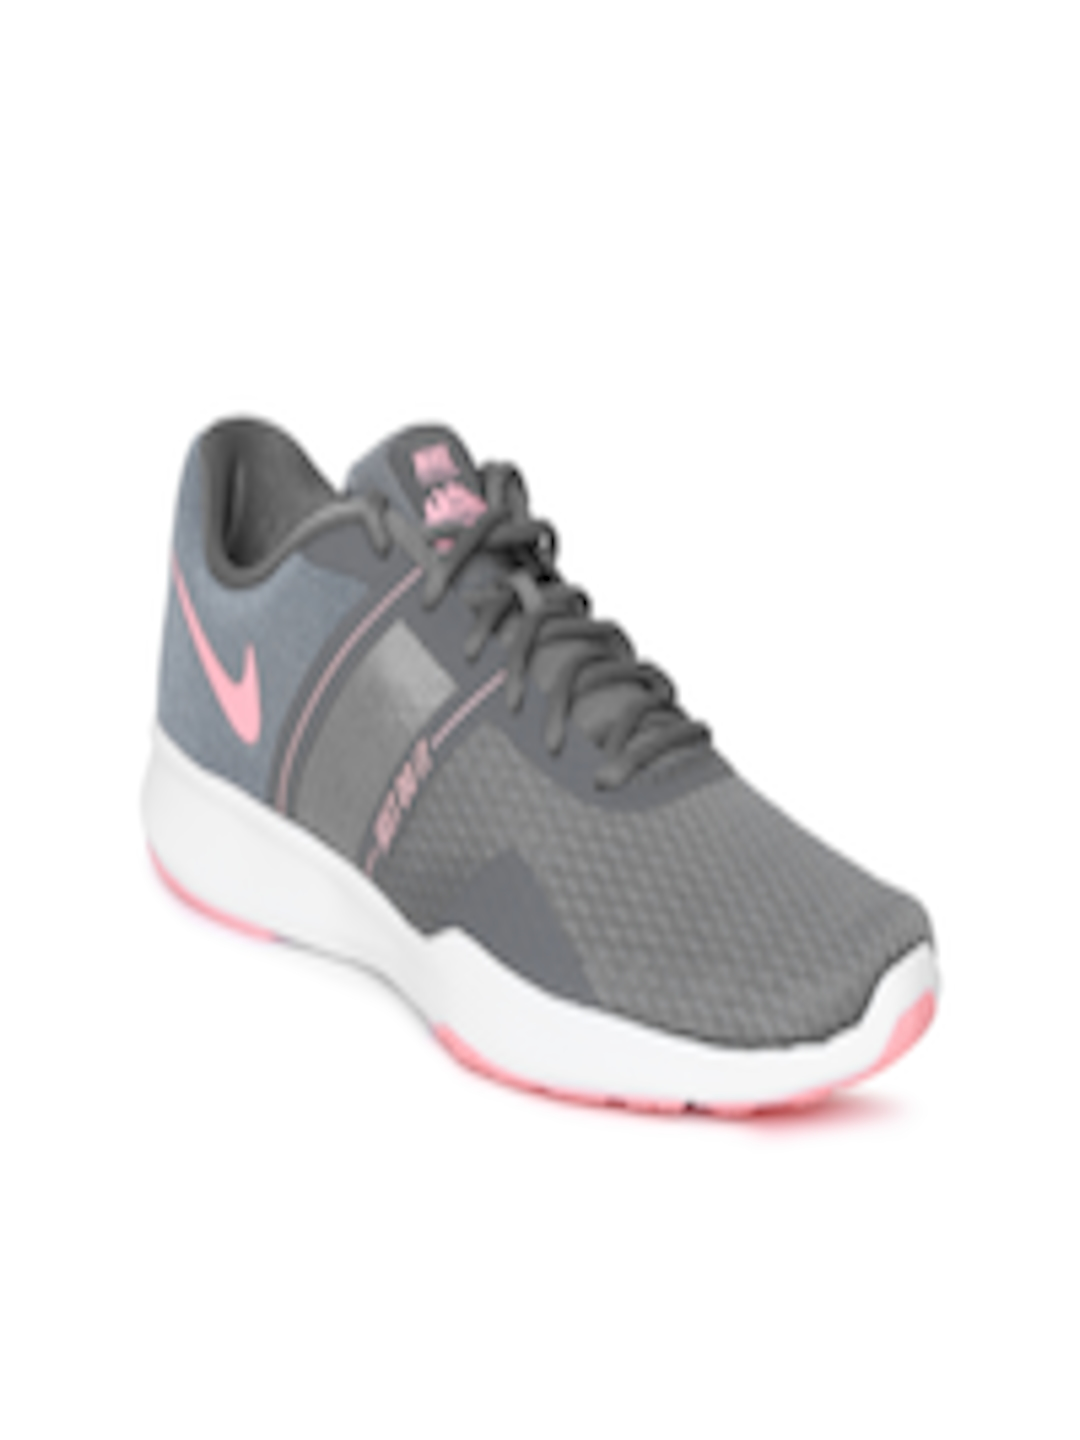 27c26a804 Buy Nike Women Grey   Pink CITY TRAINER 2 Training Shoes - Sports Shoes for  Women 6676857